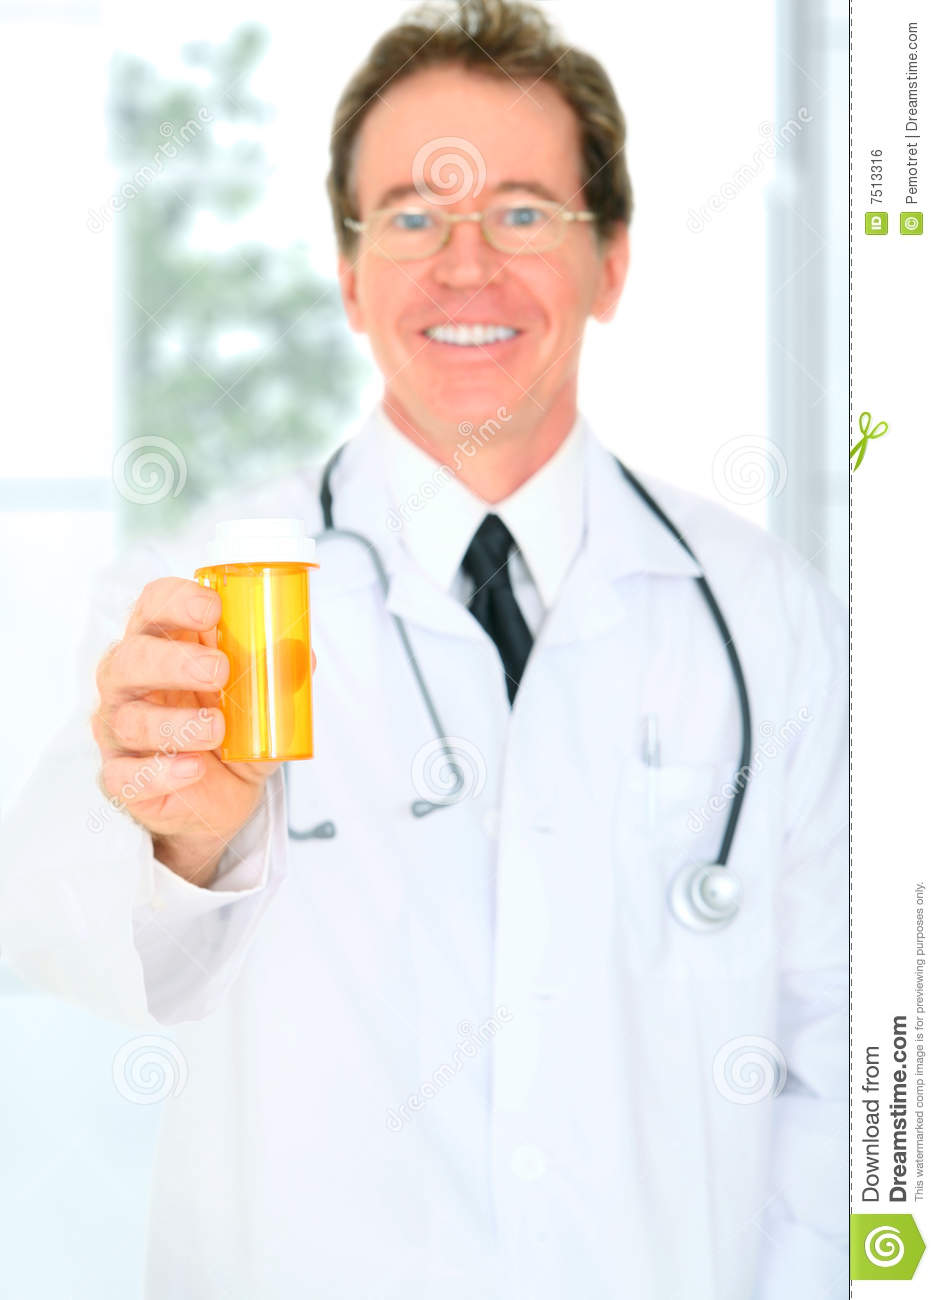 Closeup Senior Doctor Giving Medicine Royalty Free Stock Image   Image